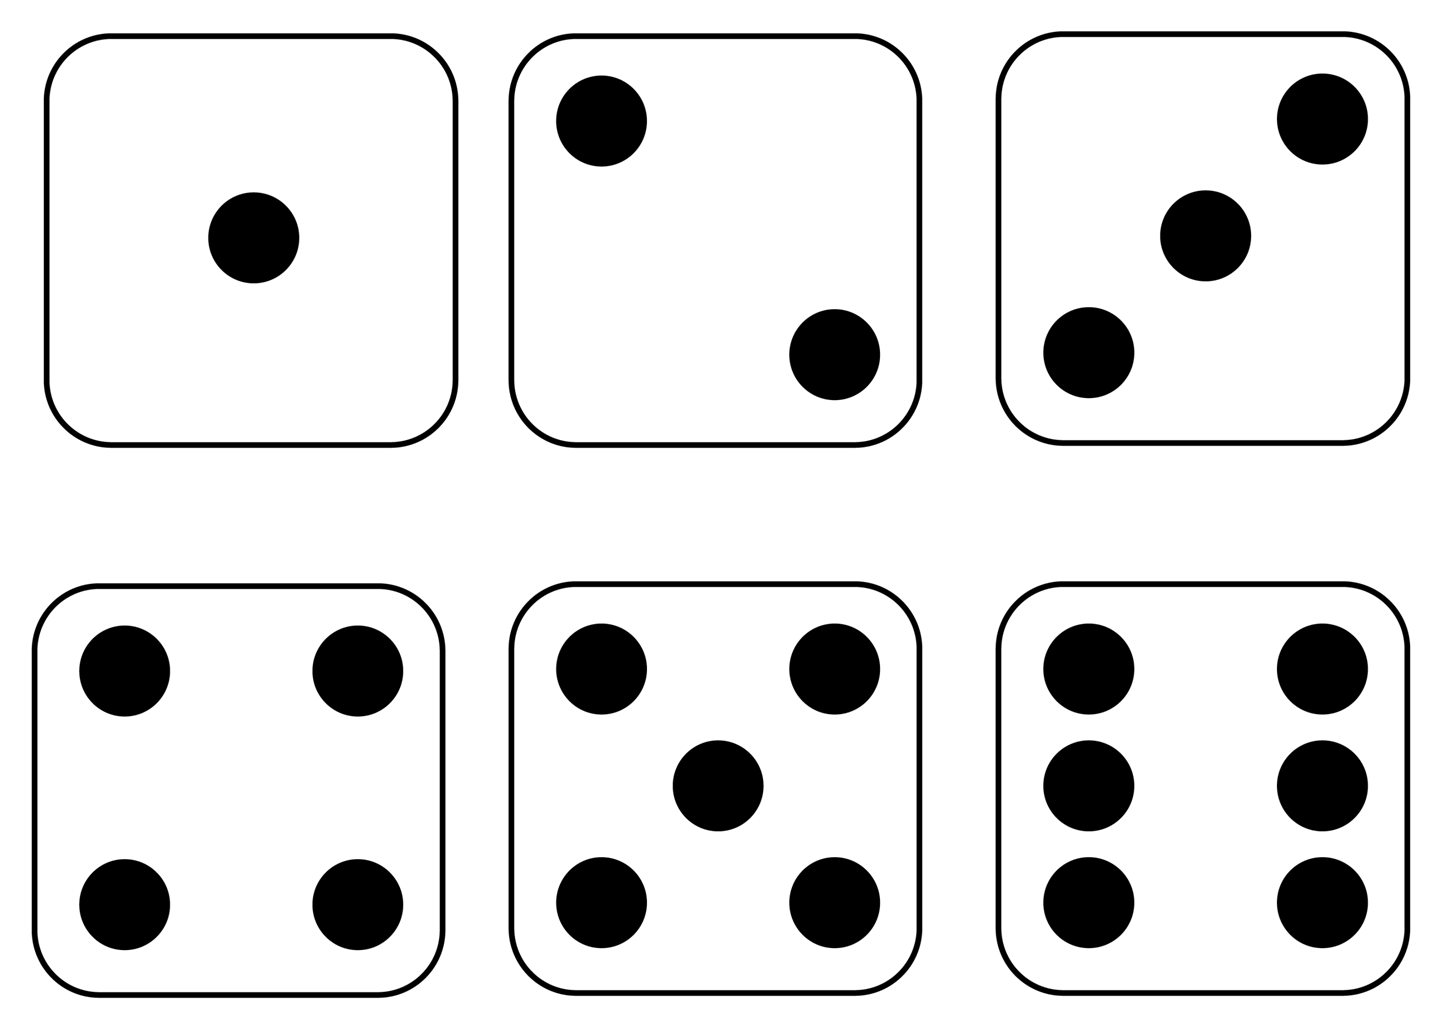 dice pattern dice cover up a dice pattern subitizing game for dice pattern